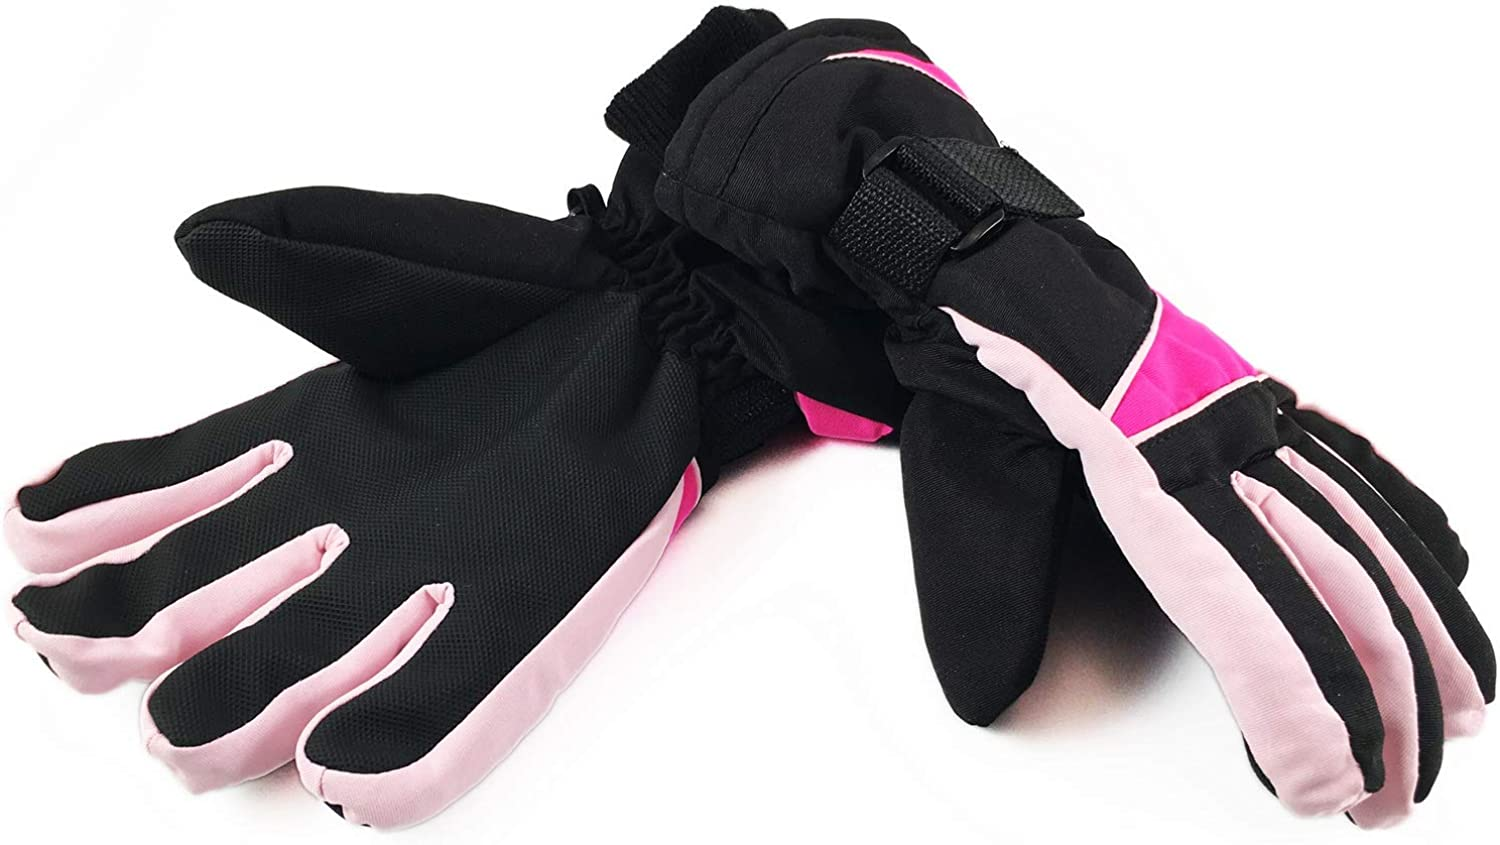 Thinsulated Ski Snow Gloves Waterproof Weather half Cold Winter for 67% OFF of fixed price Y